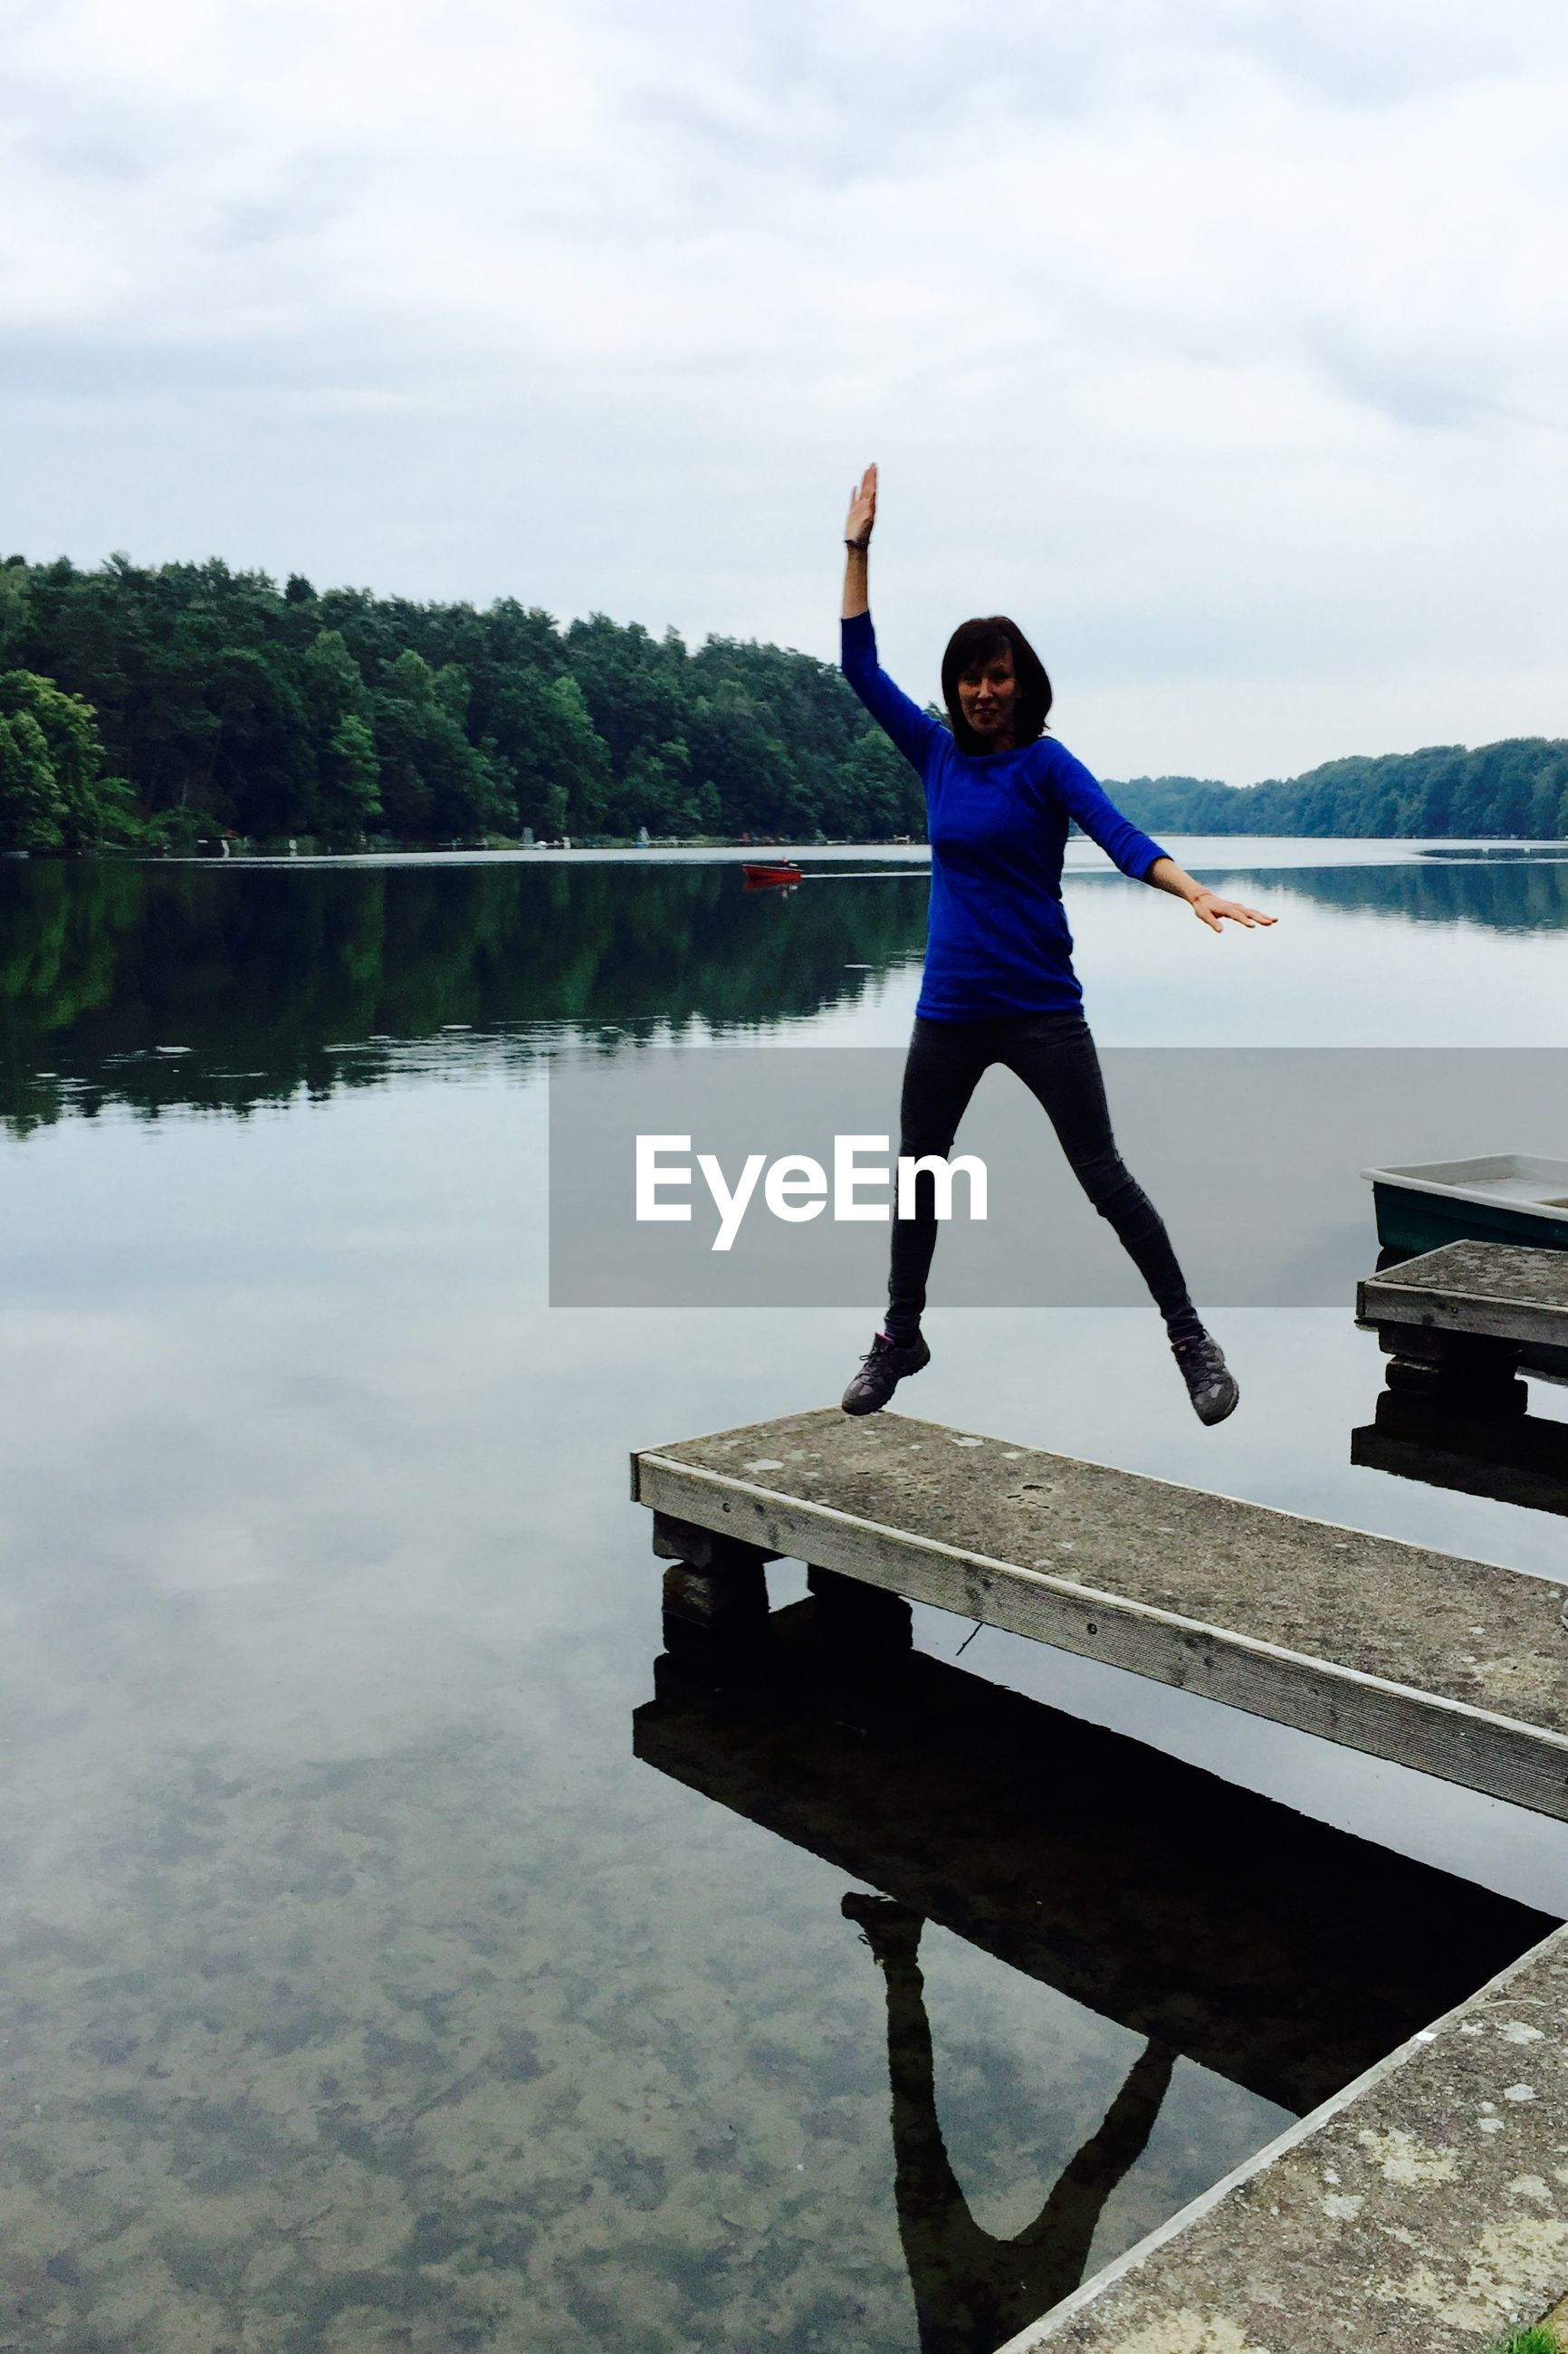 Woman Jumping On Pier Over Lake Against Cloudy Sky